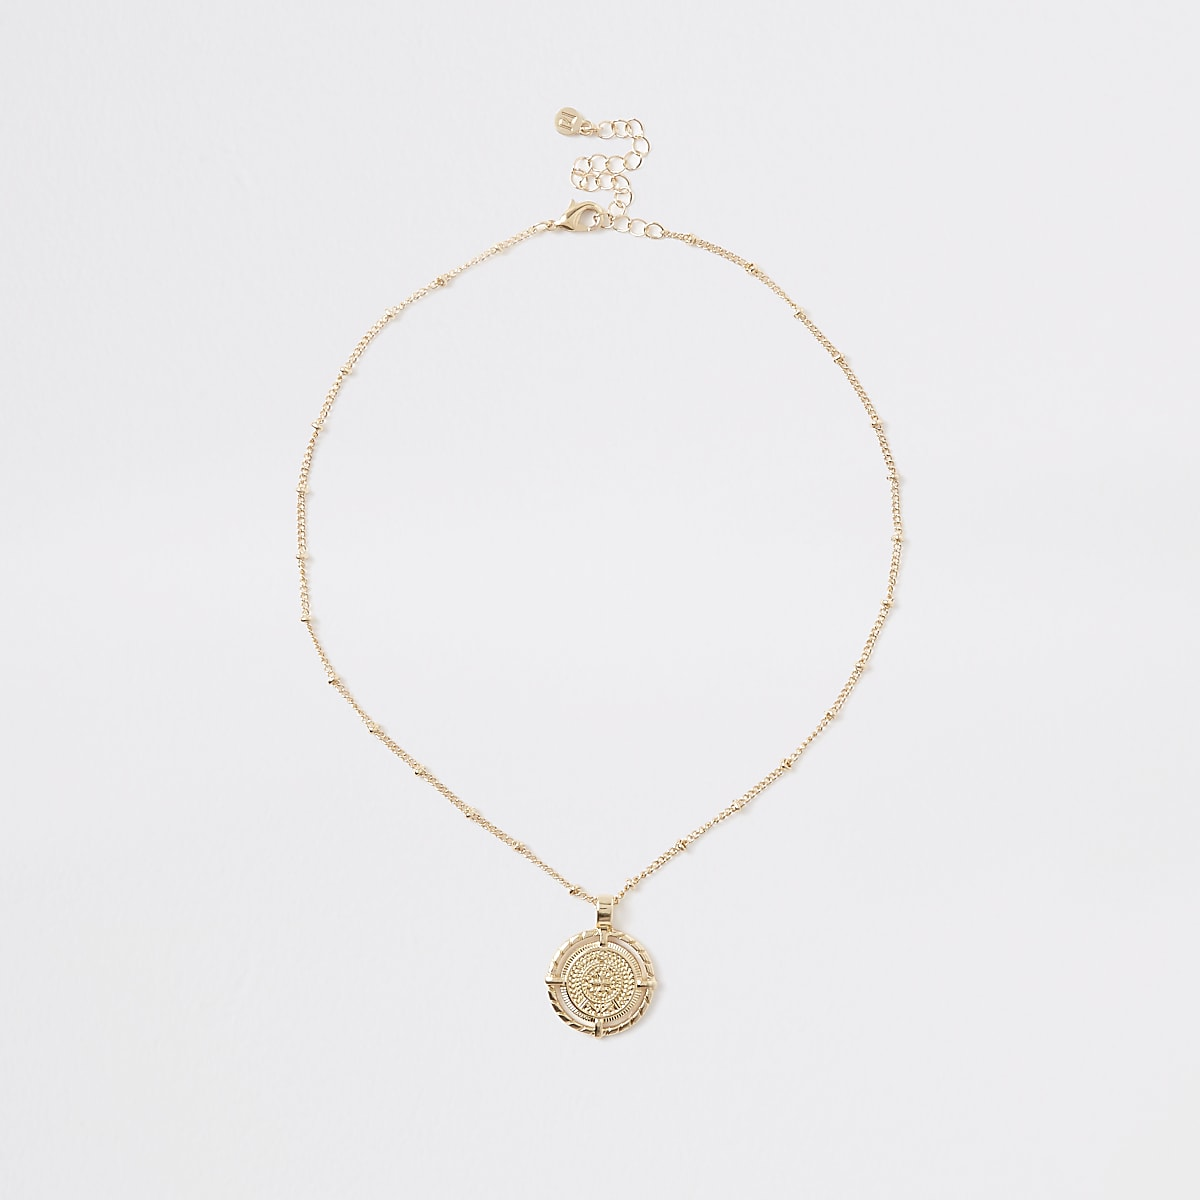 Gold color medallion pendant necklace